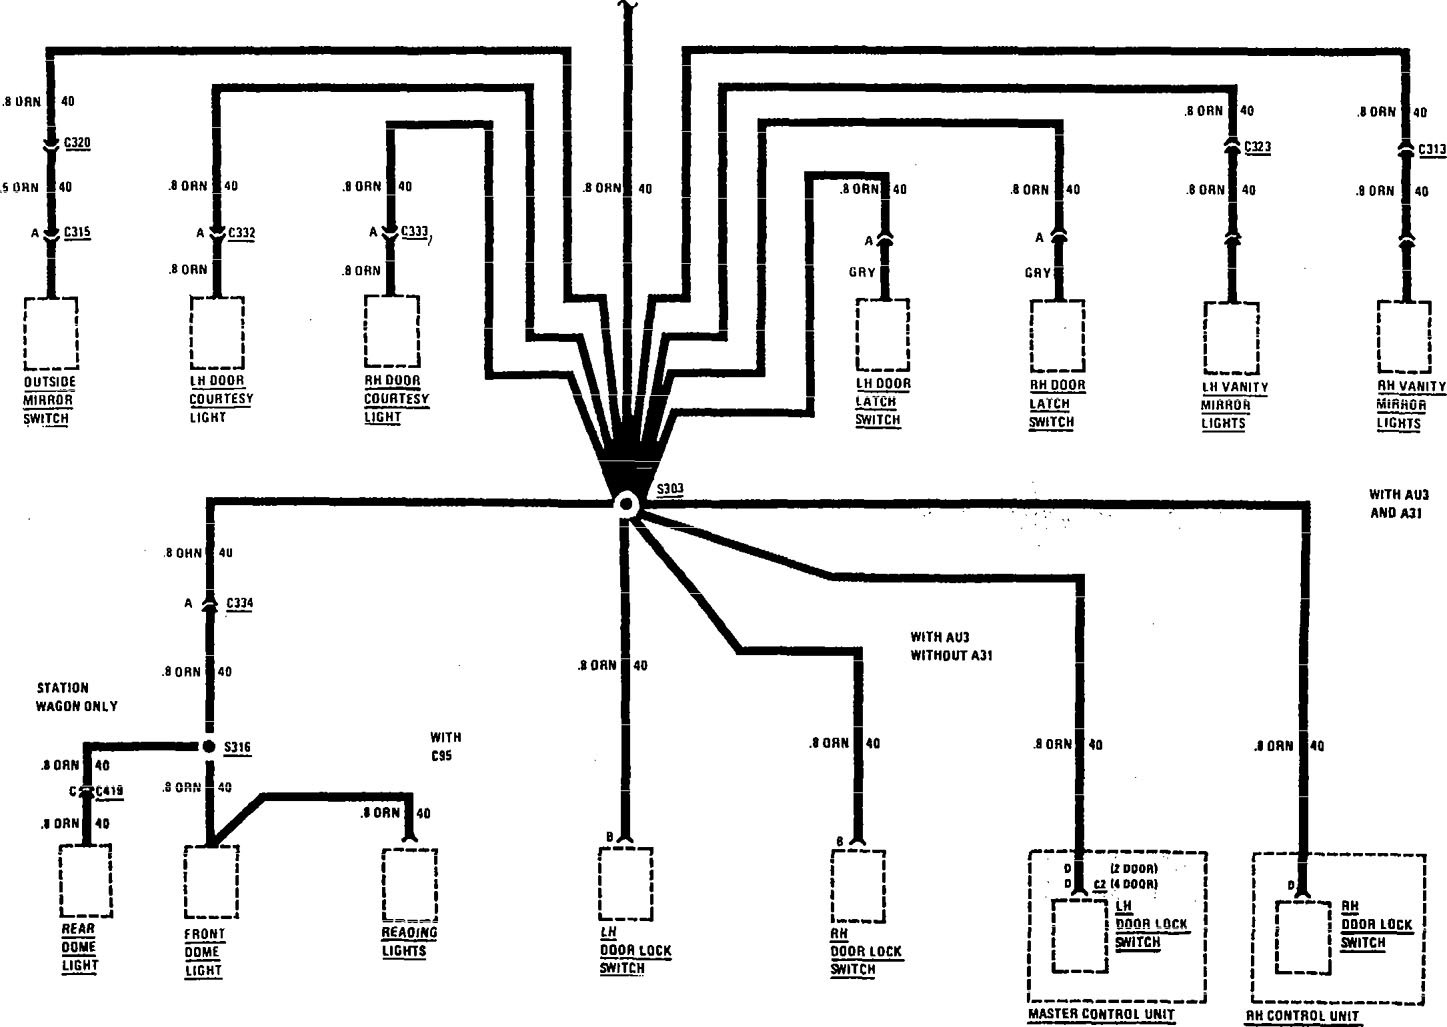 91 Buick Regal Fuse Panel. Buick. Auto Fuse Box Diagram